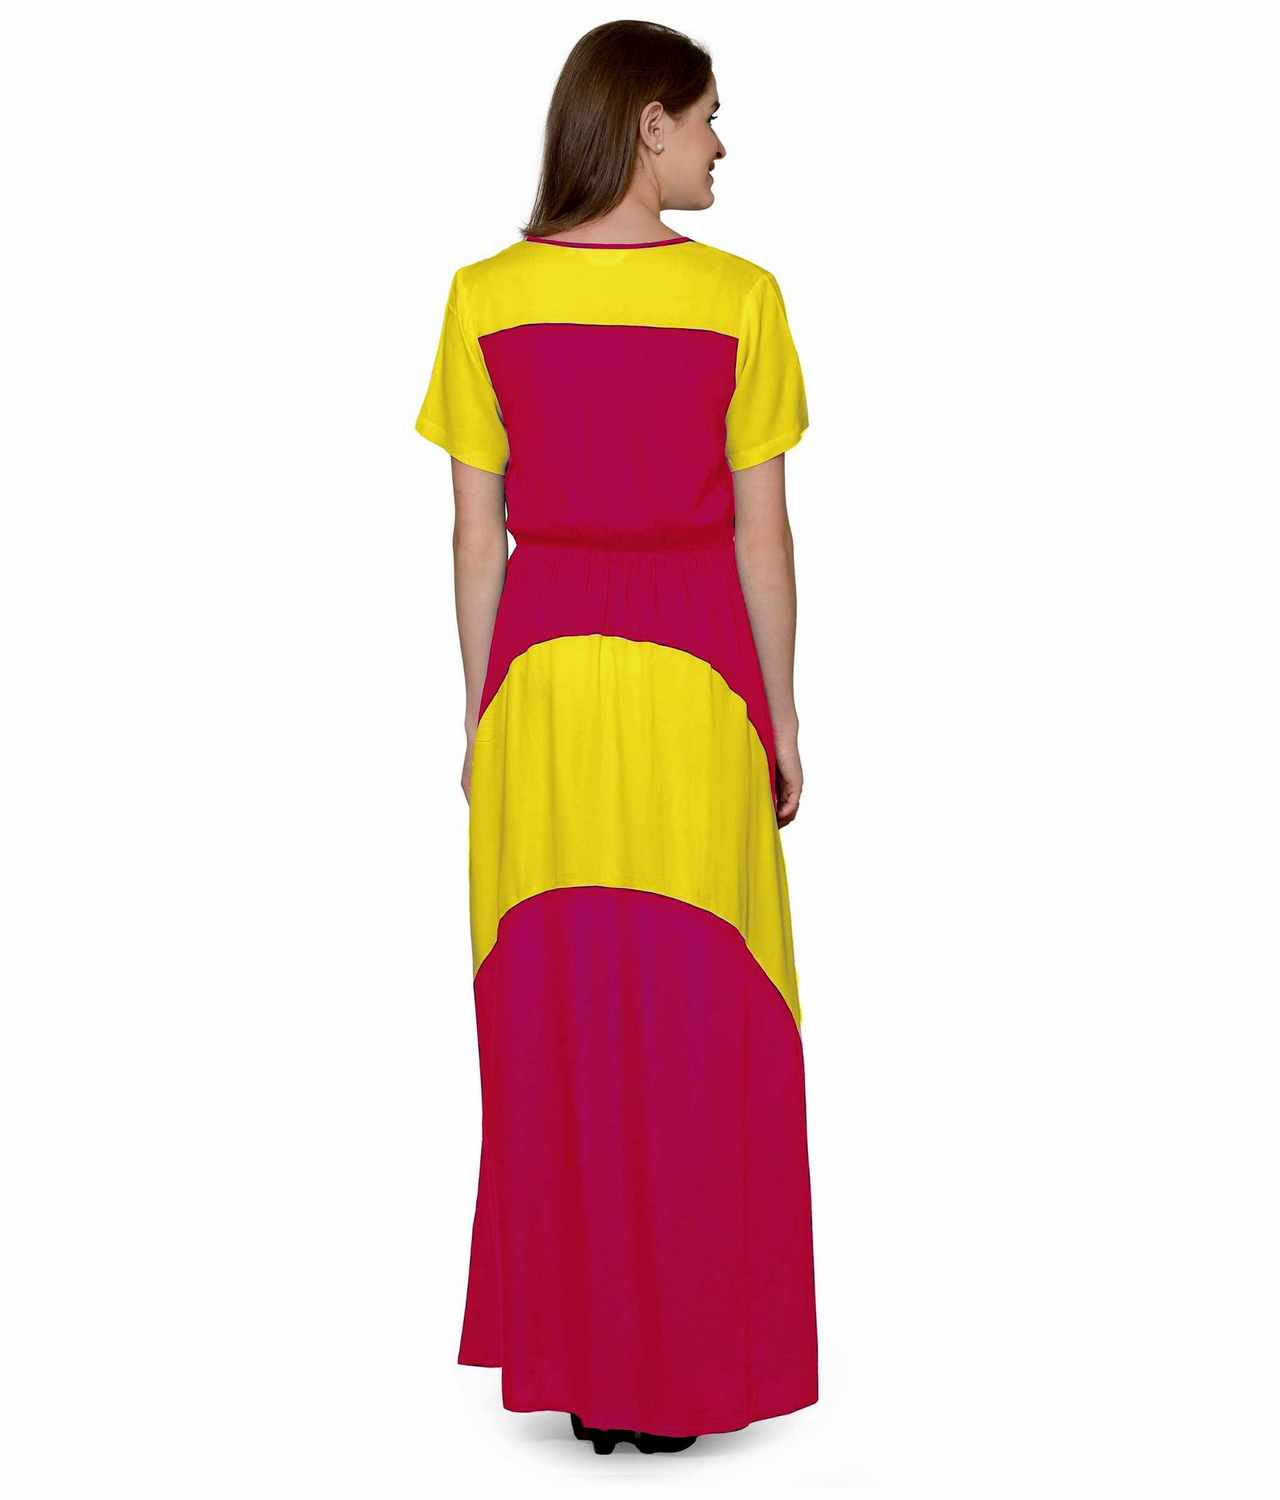 Color Block Slim Fit Maxi Dress Gown in Yellow:Fuchsia